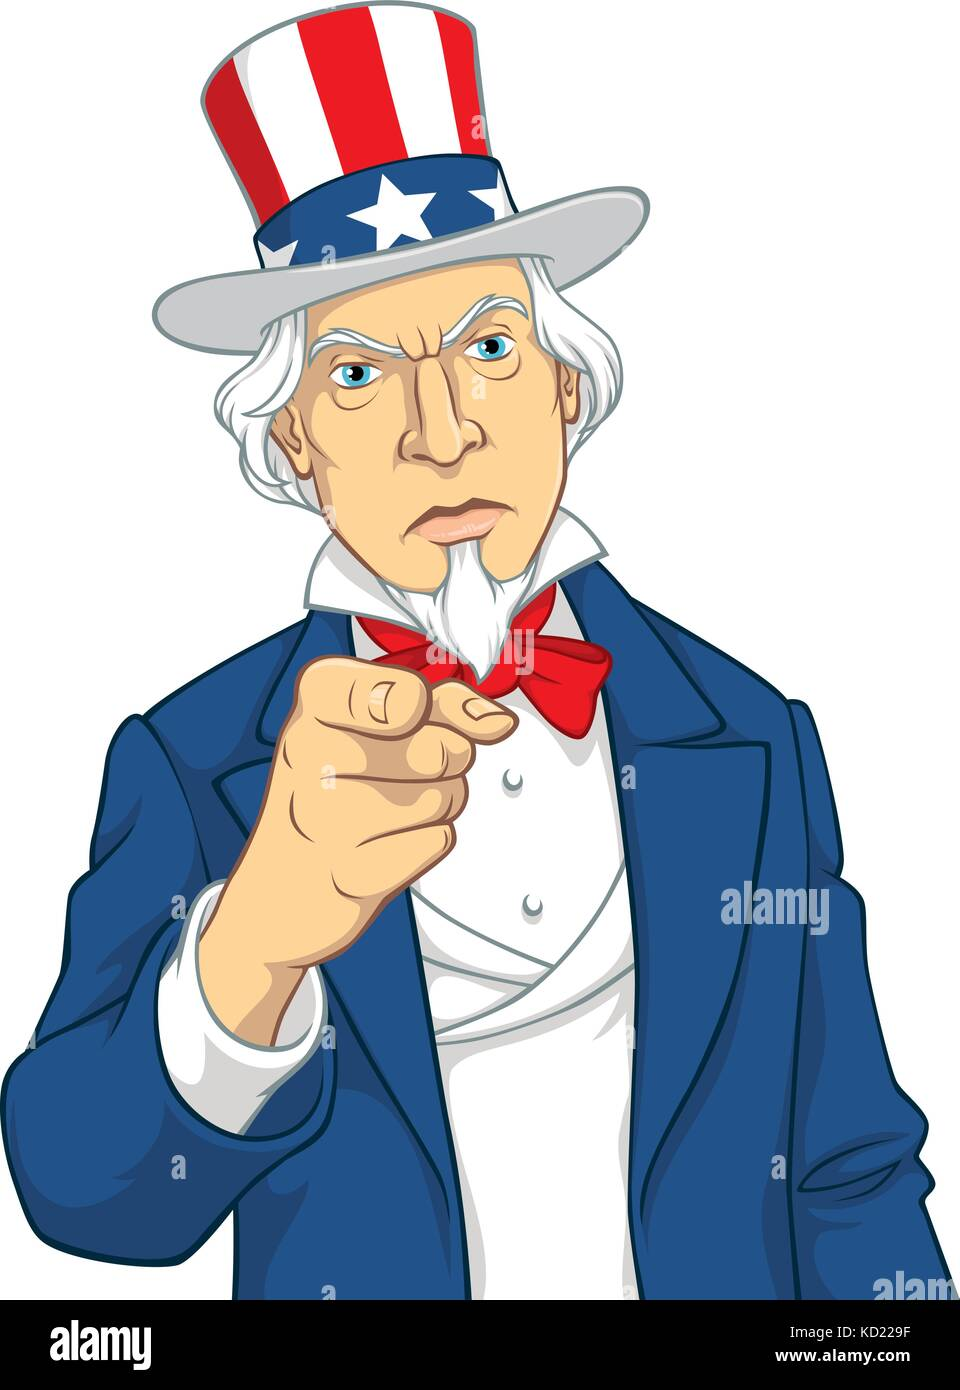 Vector illustration of Uncle Sam pointing towards the viewer - Stock Vector